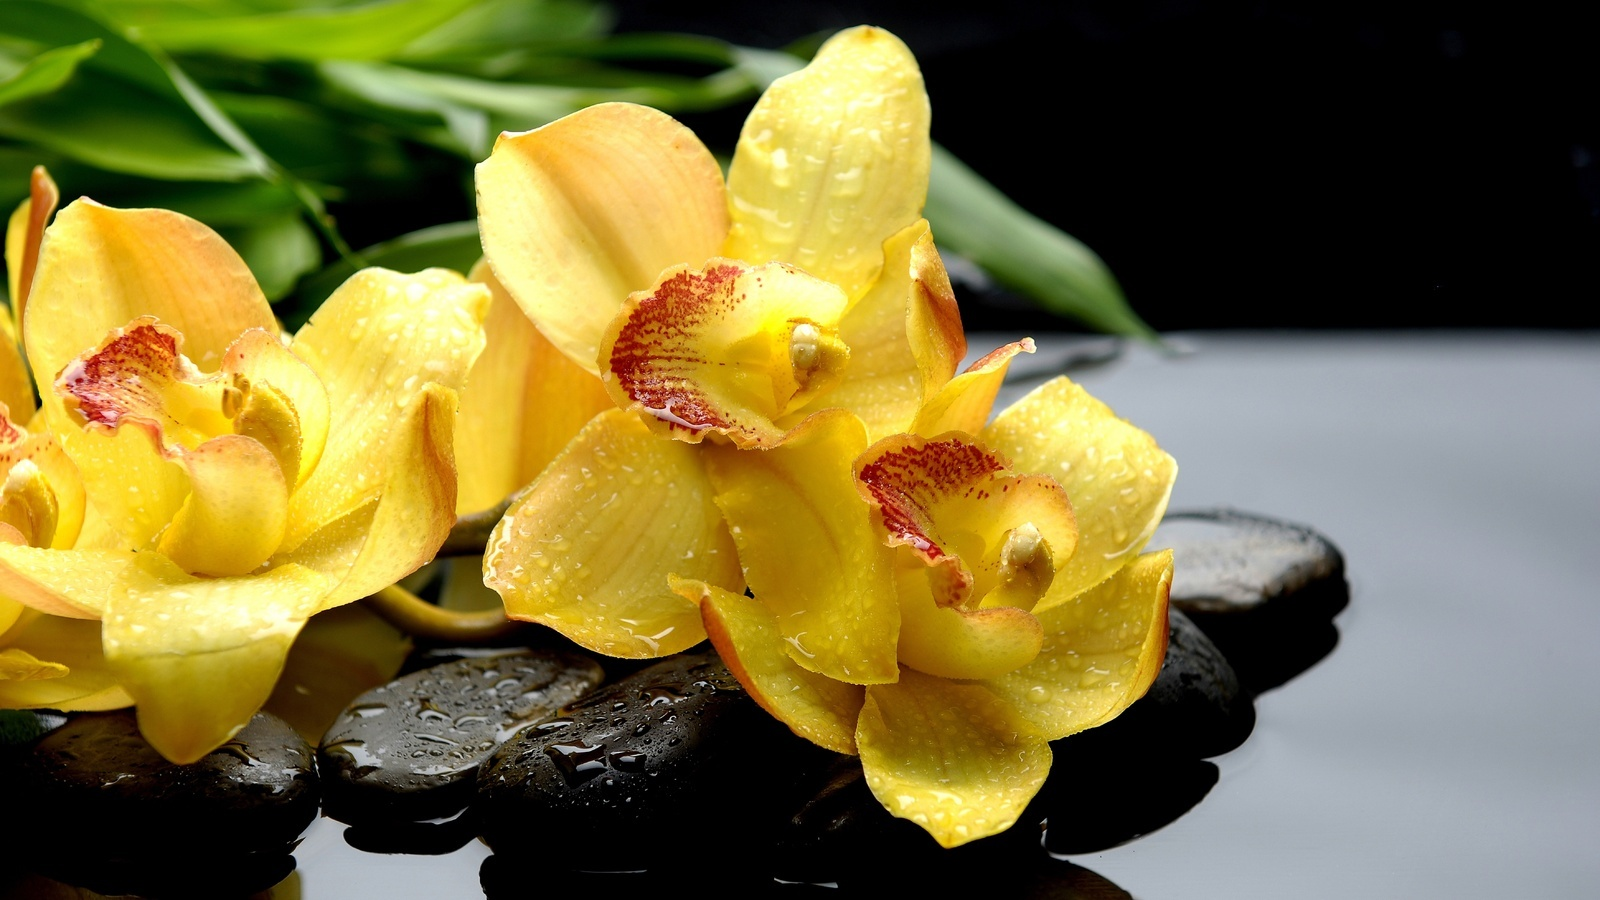 20833 download wallpaper Plants, Flowers, Drops screensavers and pictures for free